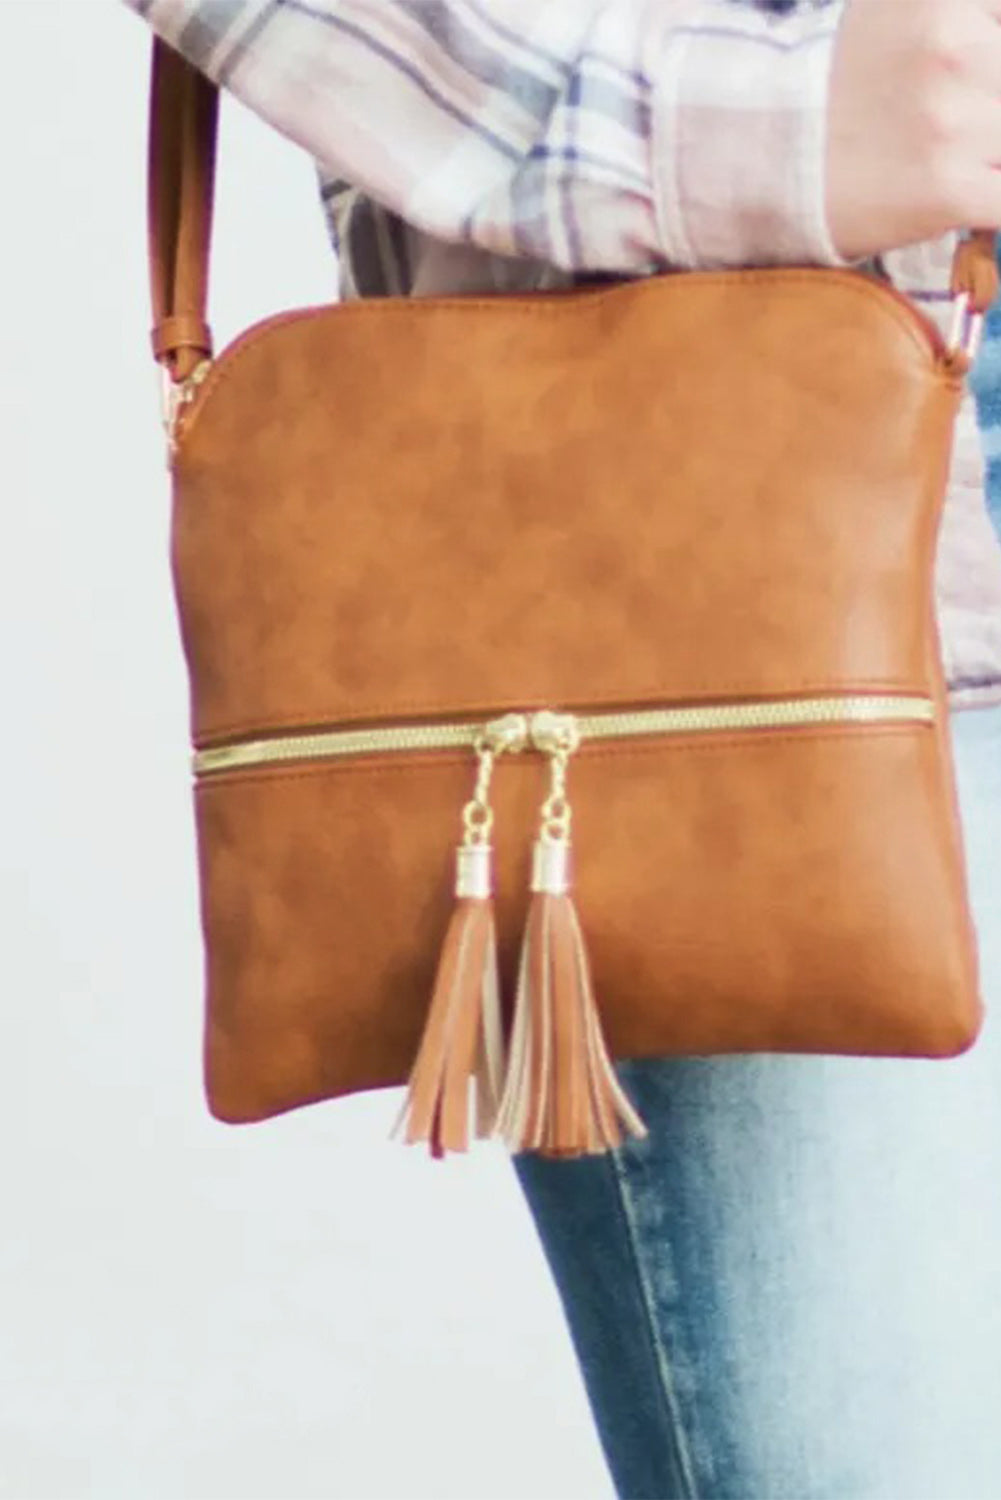 Brown Crossbody Bag with Tassel Bags Discount Designer Fashion Clothes Shoes Bags Women Men Kids Children Black Owned Business